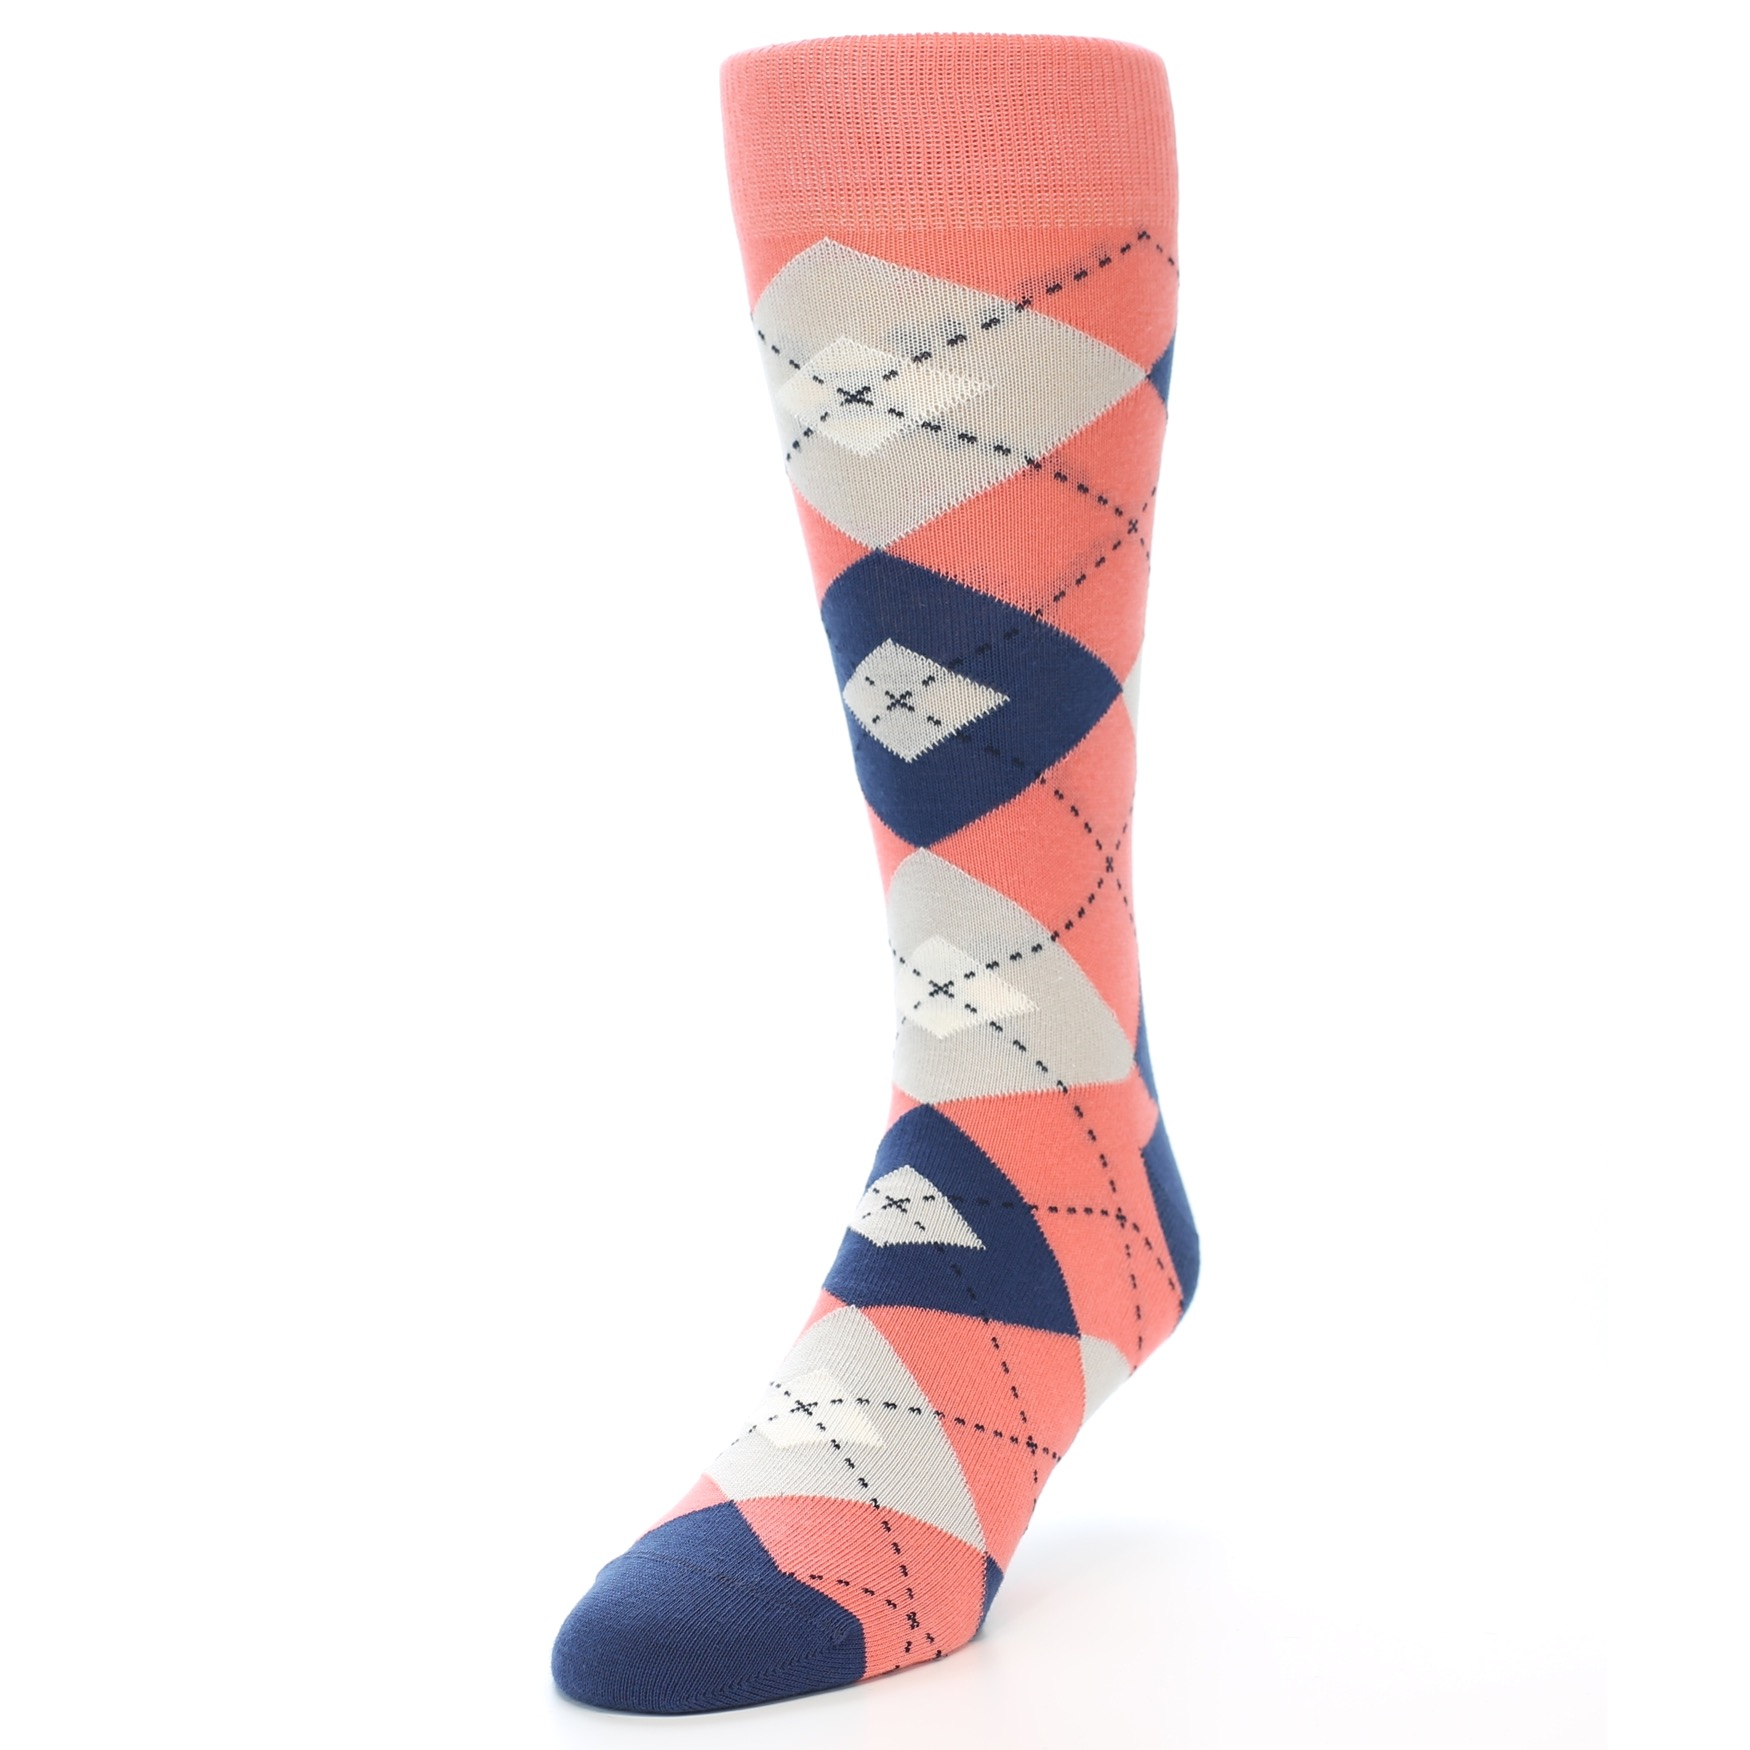 Coral Navy Argyle Wedding Groomsmen Men's Dress Socks – boldSOCKS